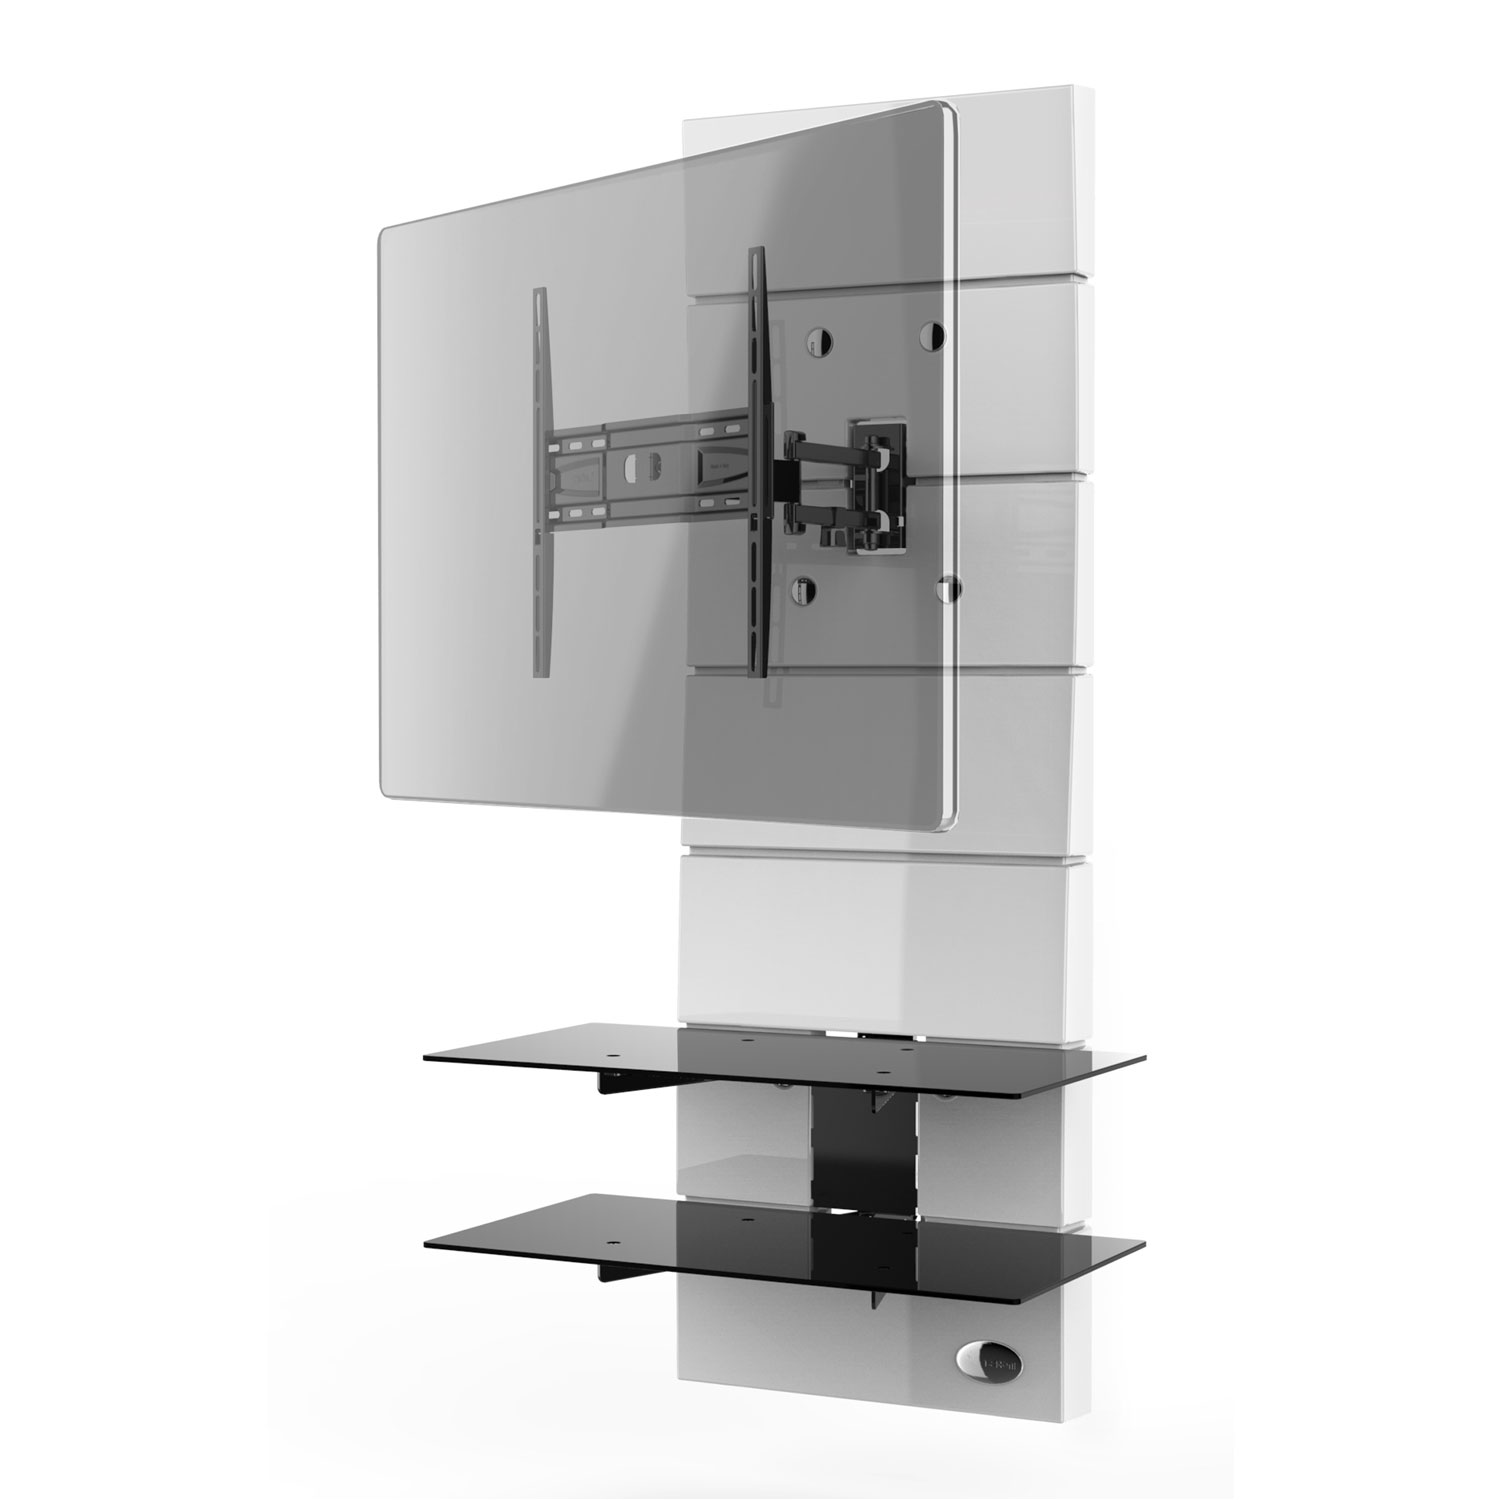 Meliconi ghost design 3000 rotation blanc meuble tv meliconi sur ldlc - Support tv angle mural ...